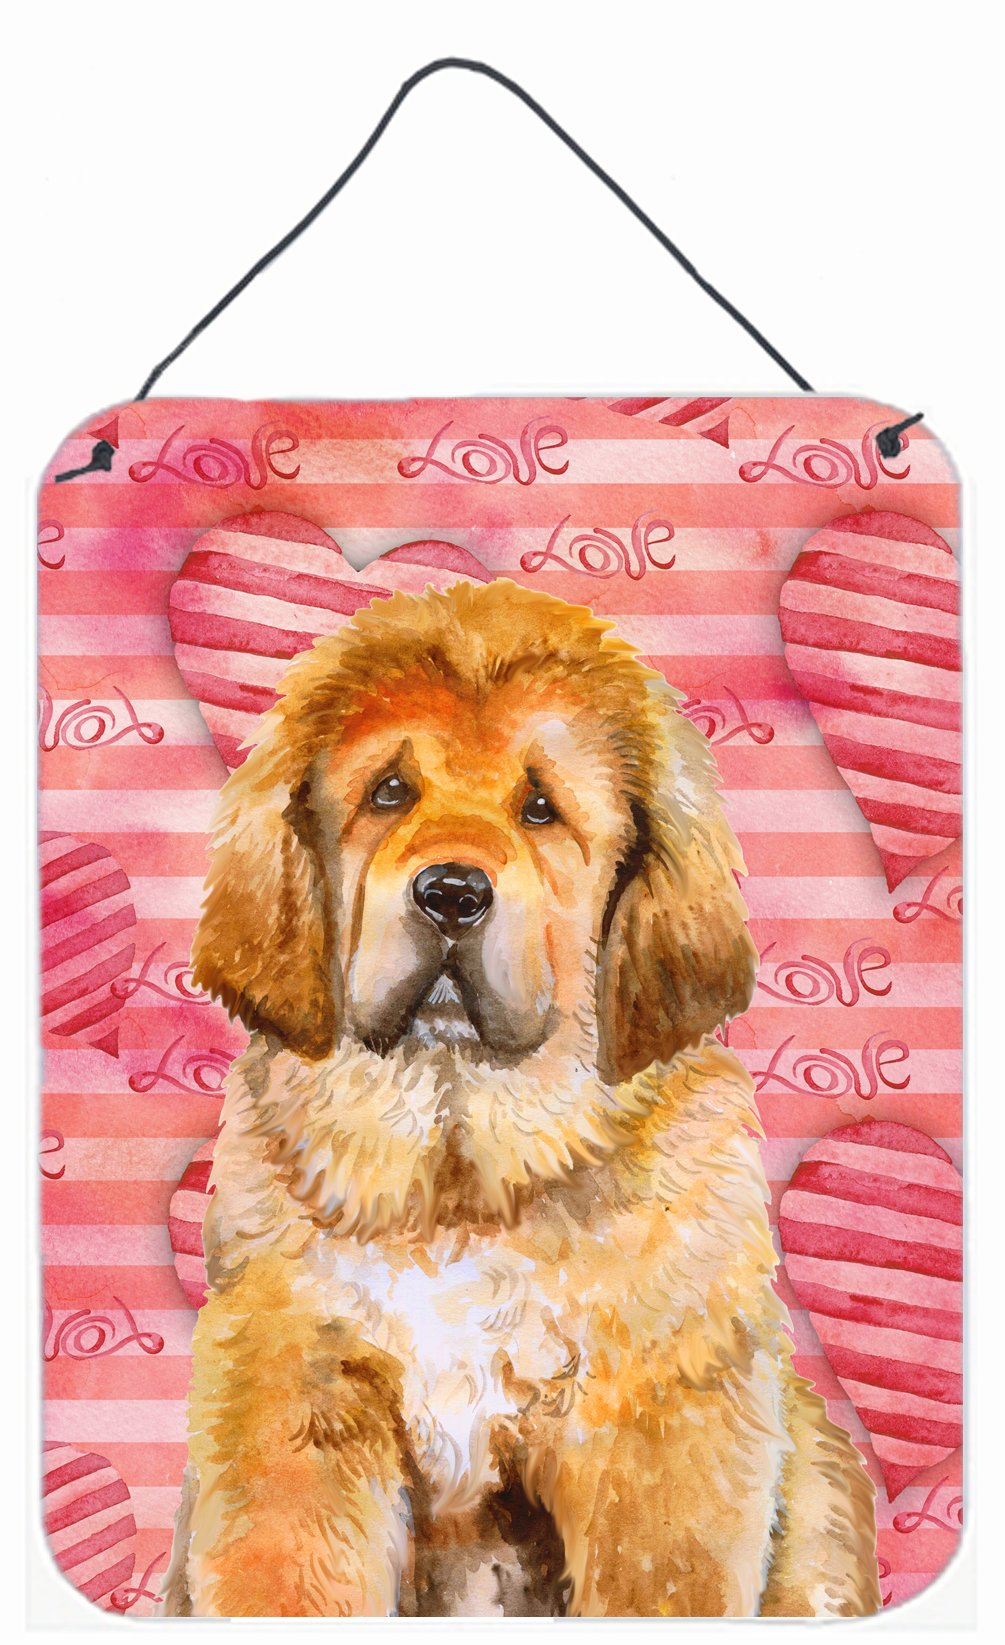 Tibetan Mastiff Love Wall or Door Hanging Prints BB9808DS1216 by Caroline's Treasures